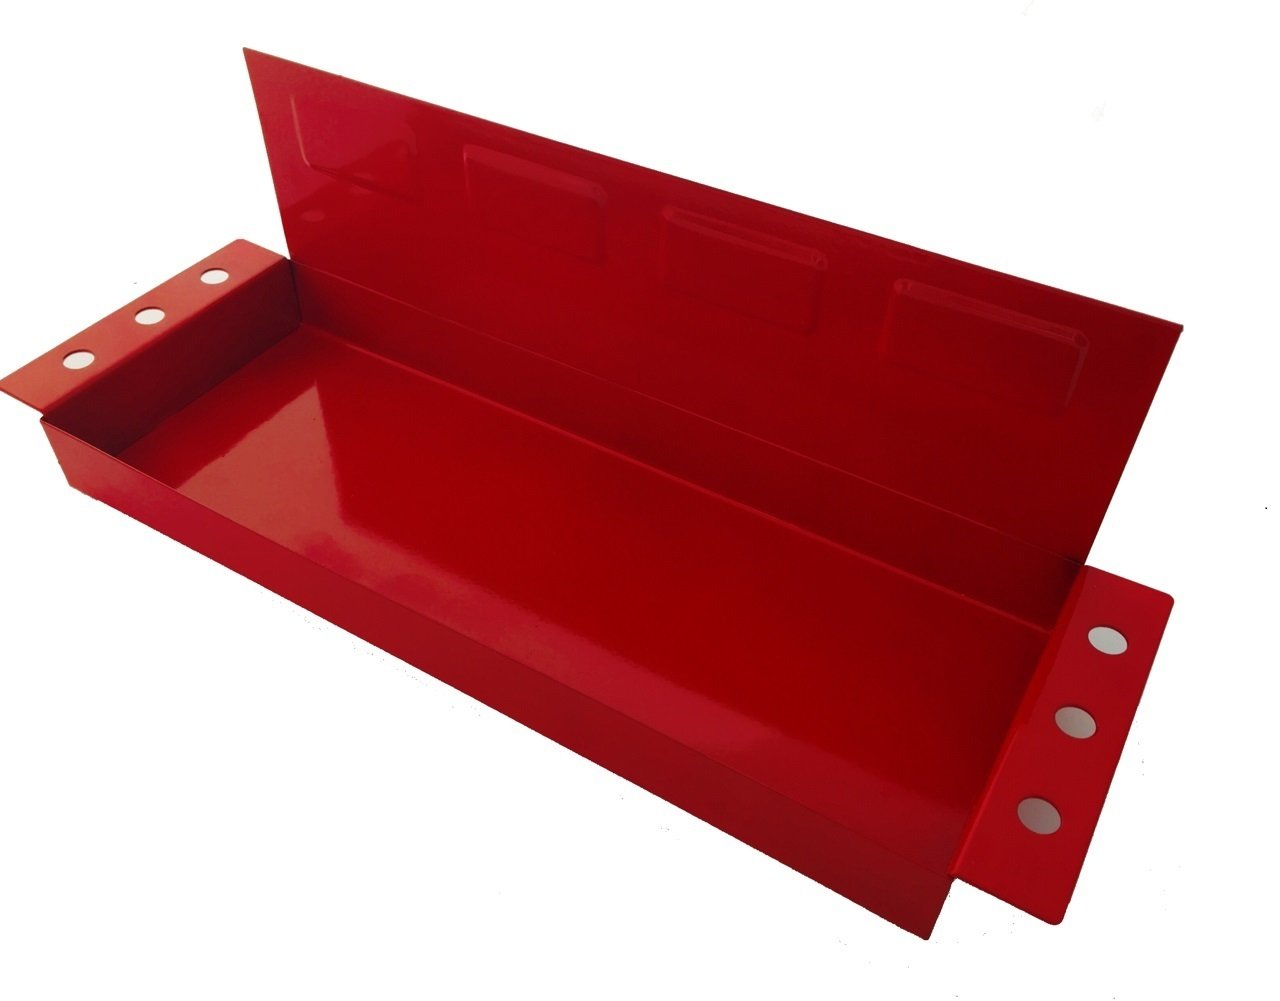 Magnetic Tool Storage Holding Tray Shelf with Screwdriver Holder Habco Products 52008